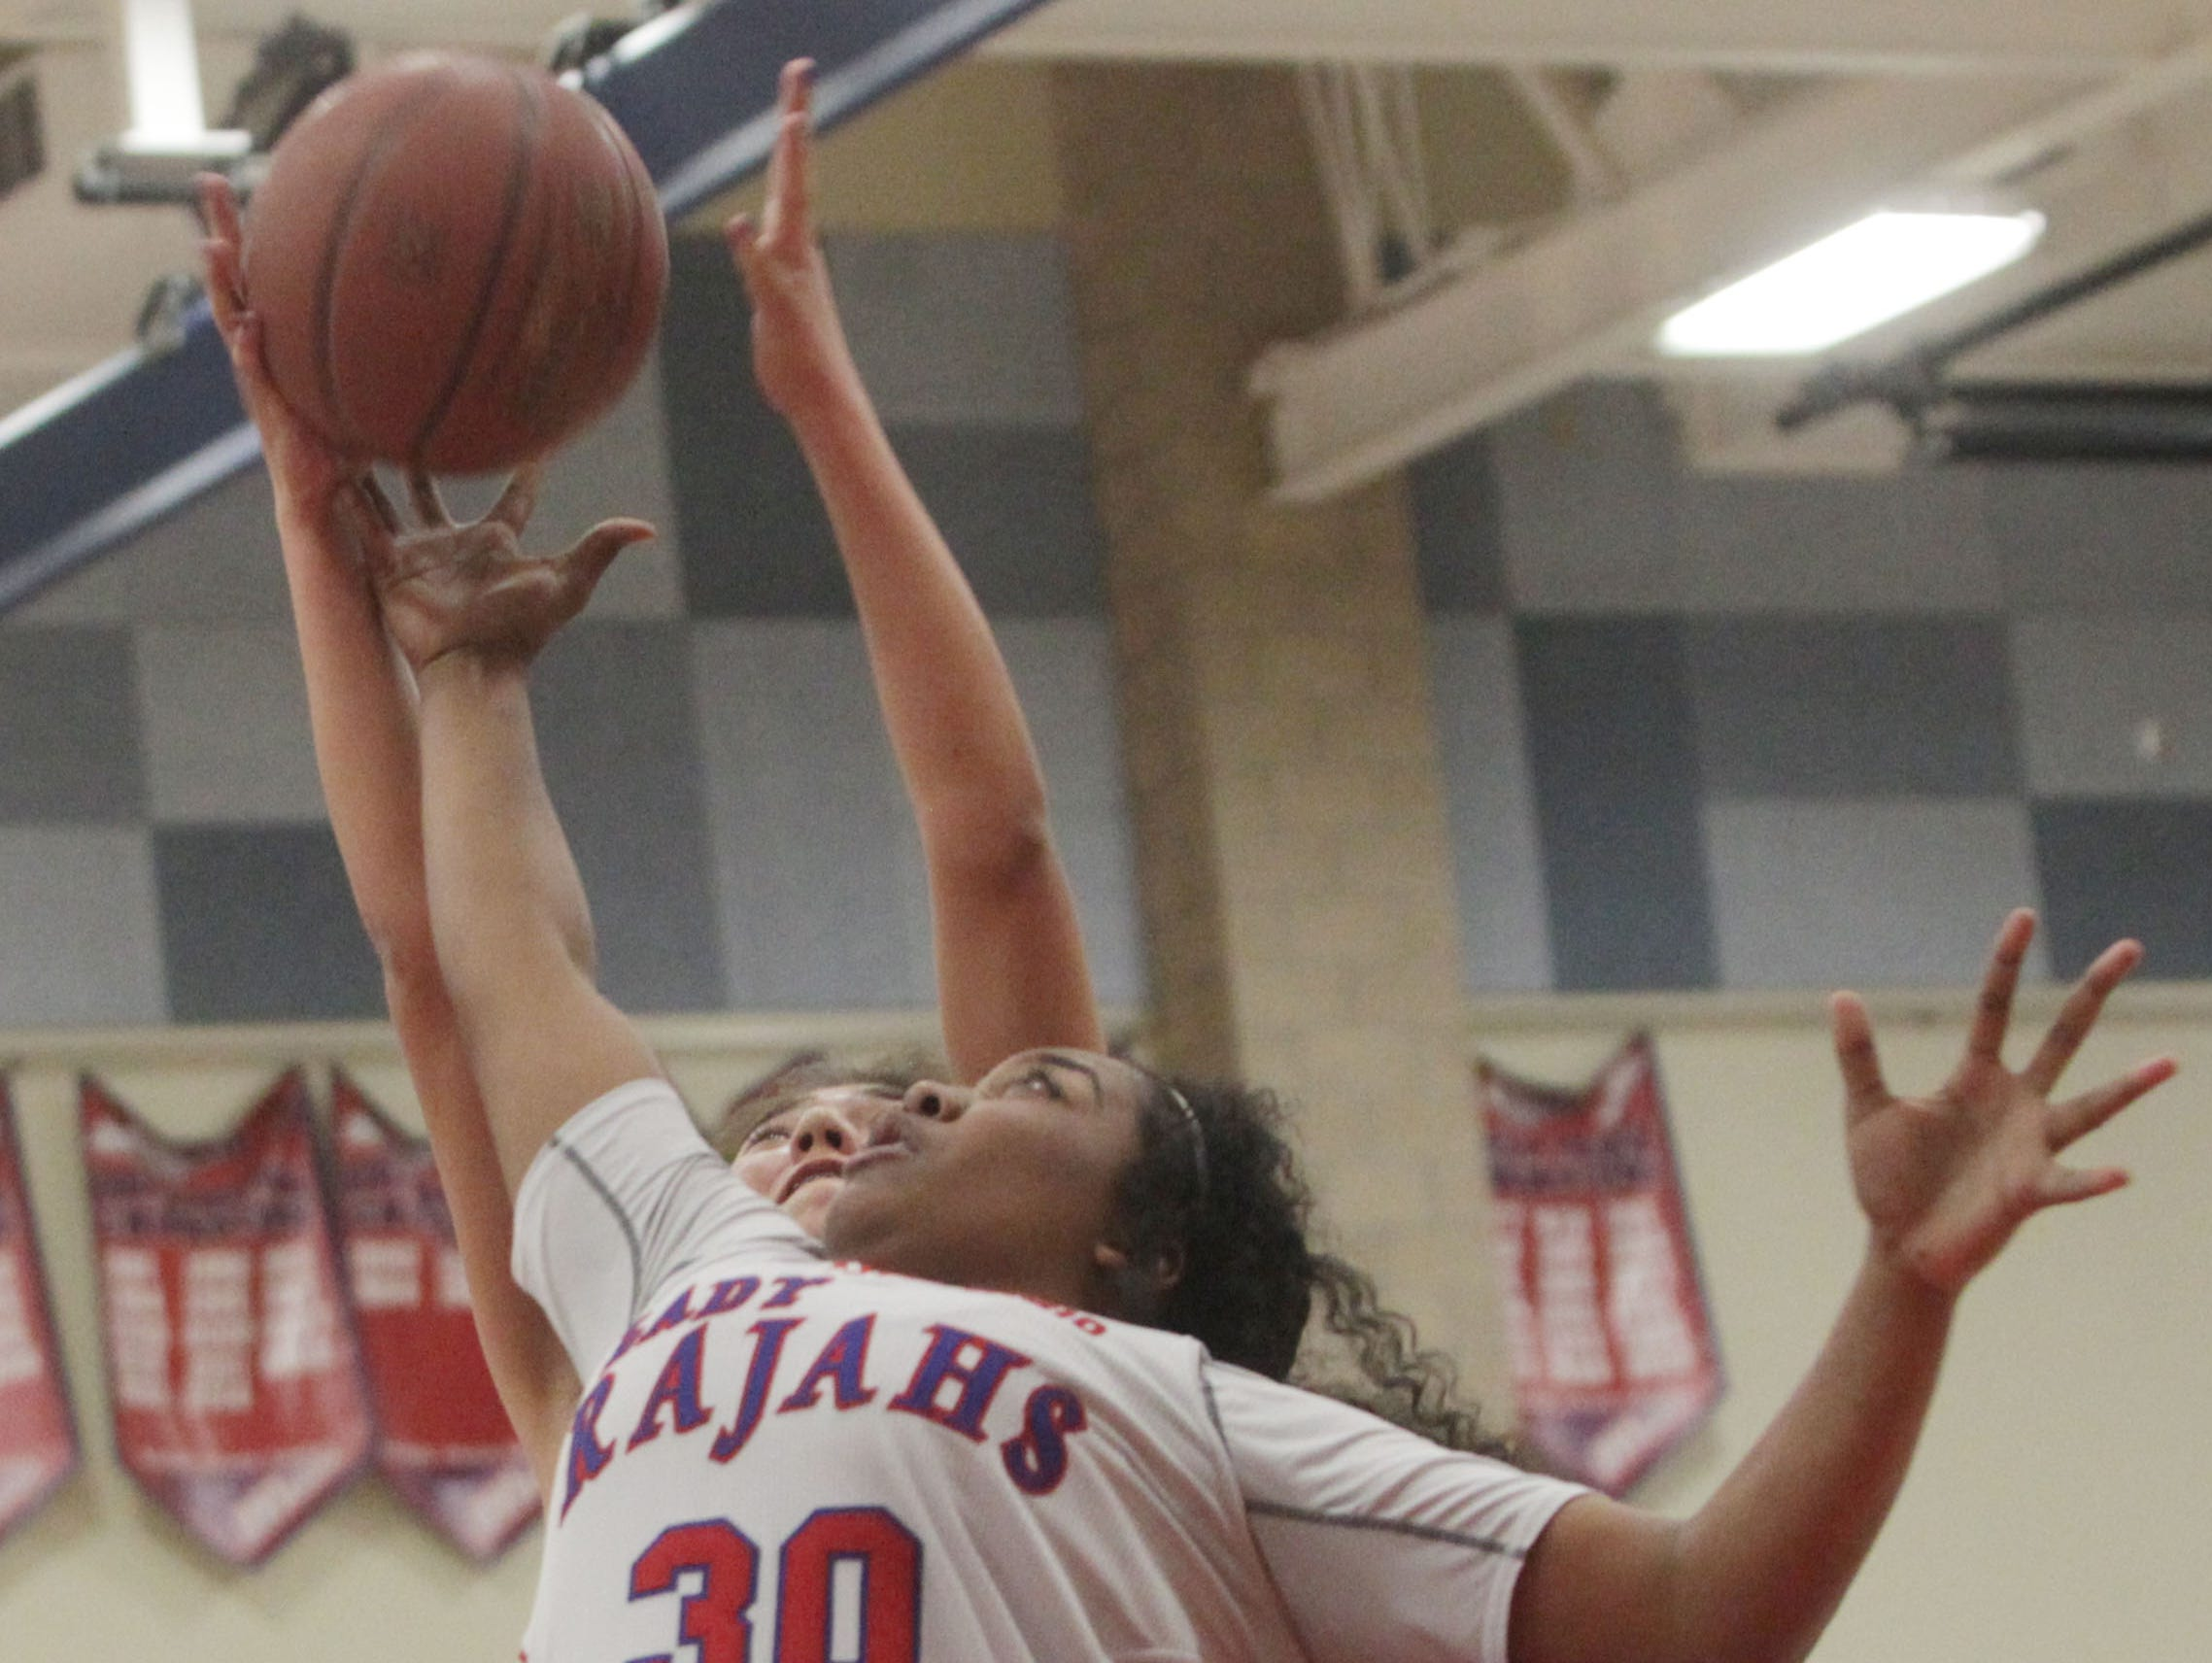 Indio High School's Jullissa Garza, in white, goes up for a rebound against Diamond Ranch High School during their CIF game at Indio. Indio won the game.